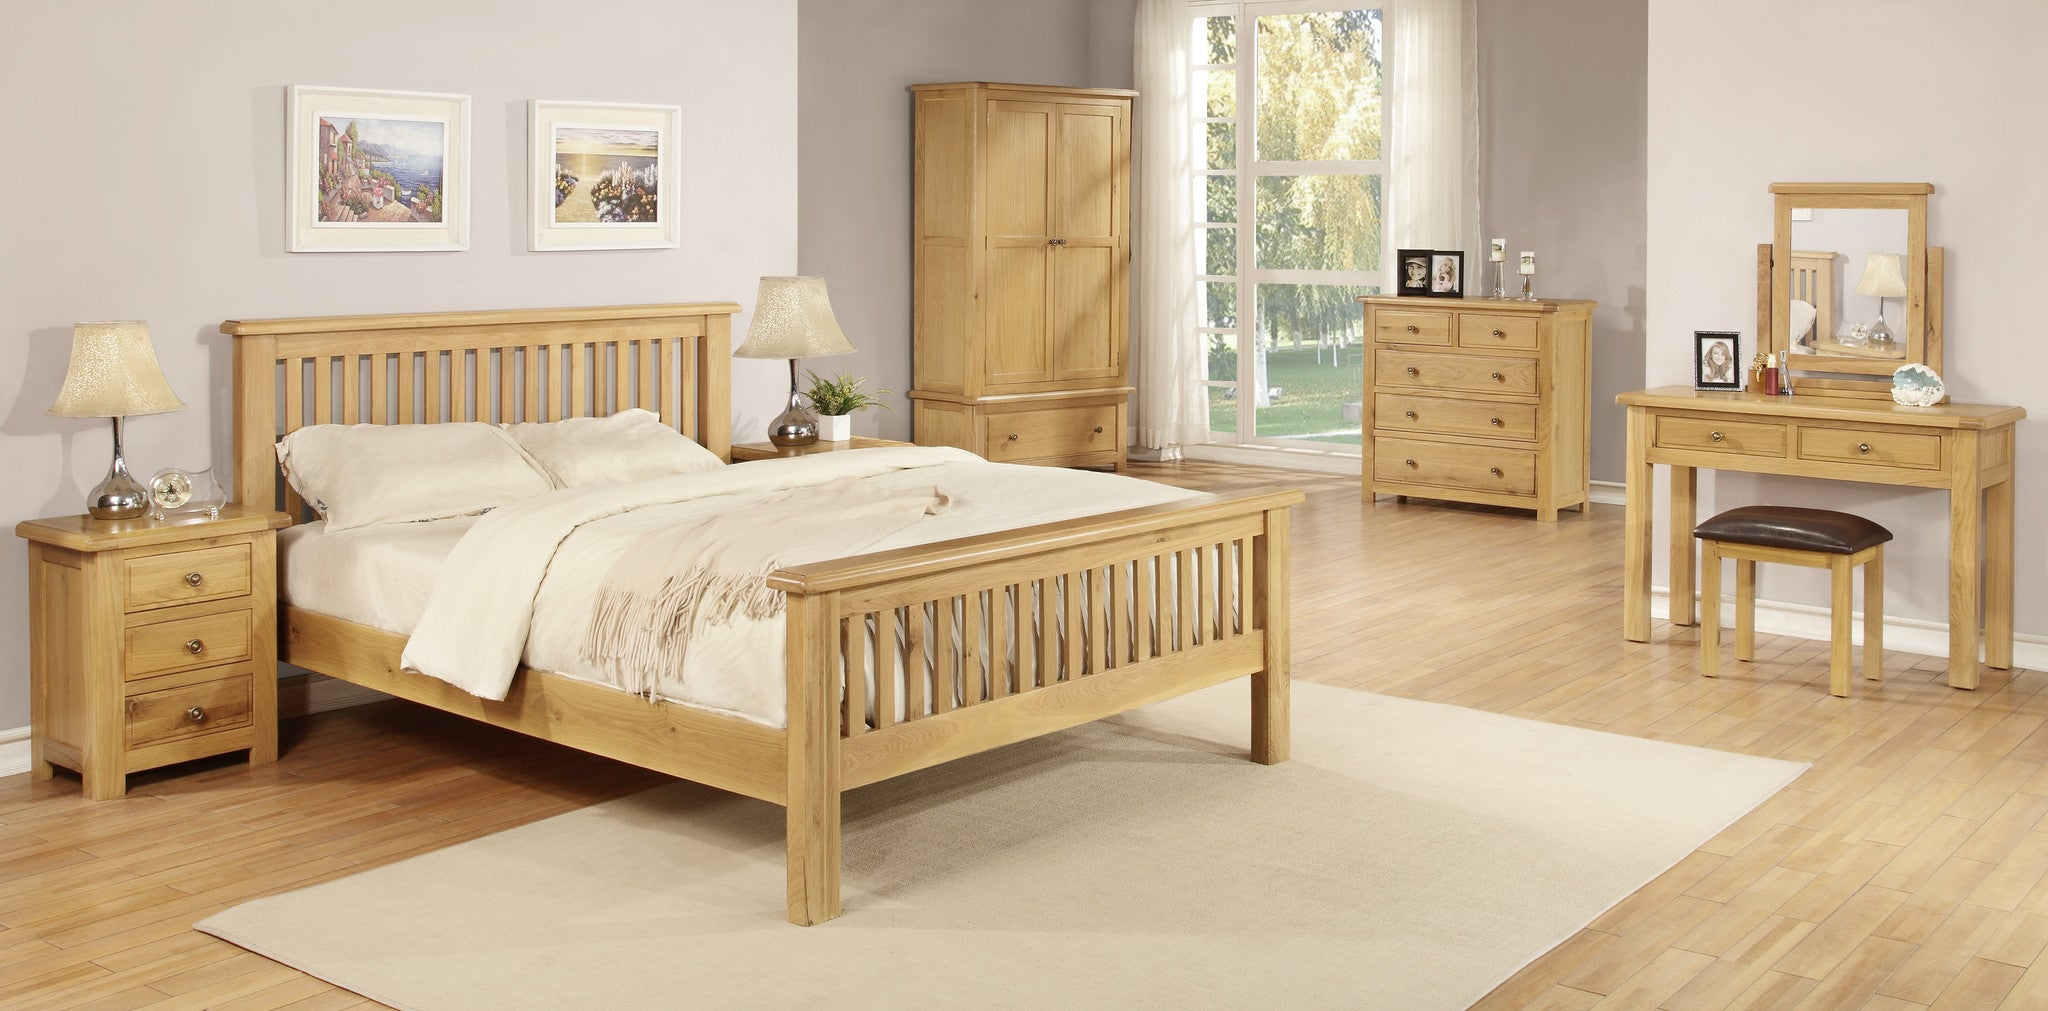 Stratton Oak Bedroom furniture